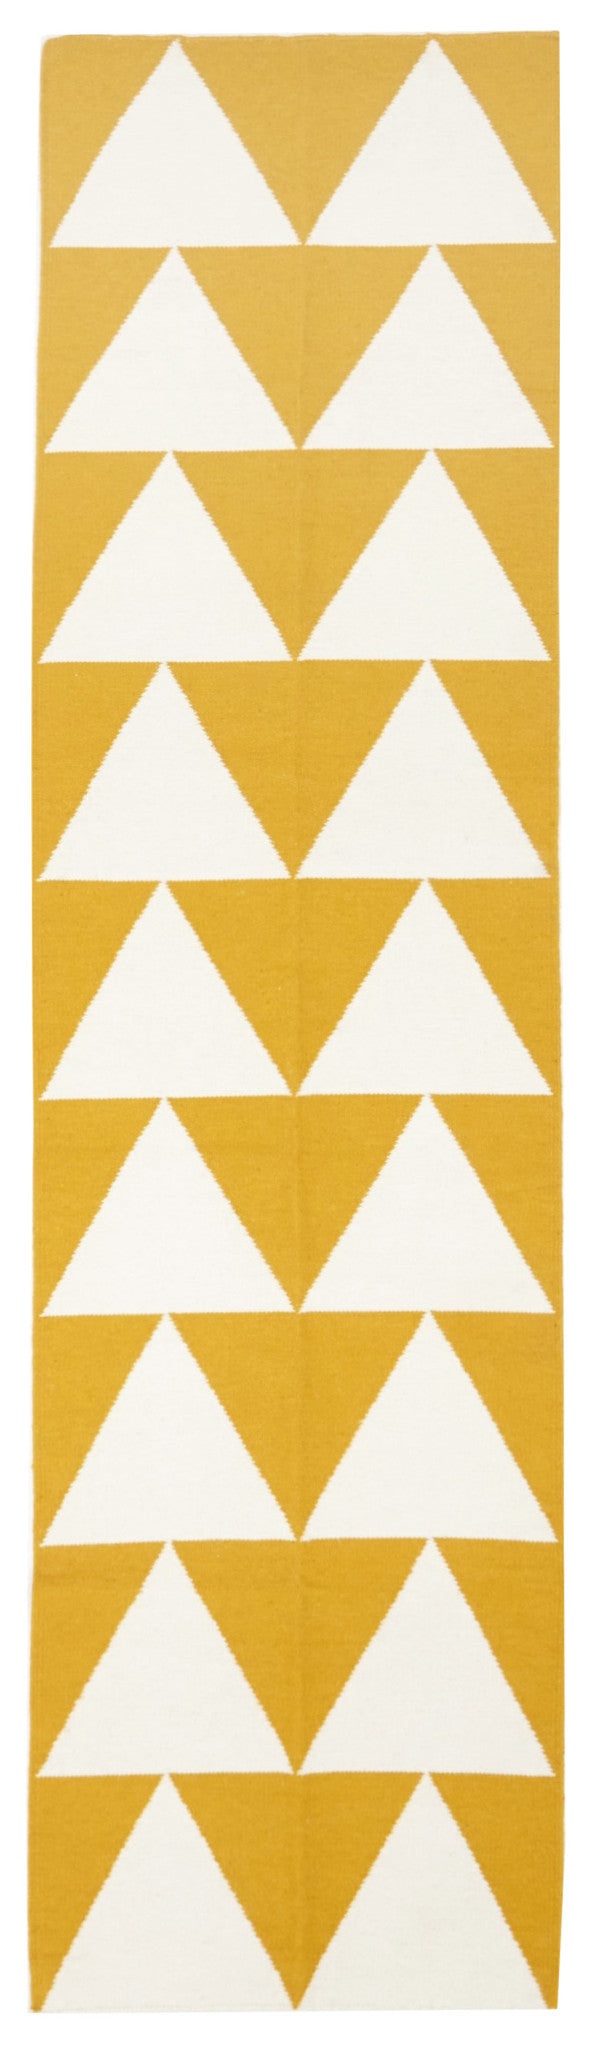 Pyramid Flat Weave Rug Yellow - MaddieBelle